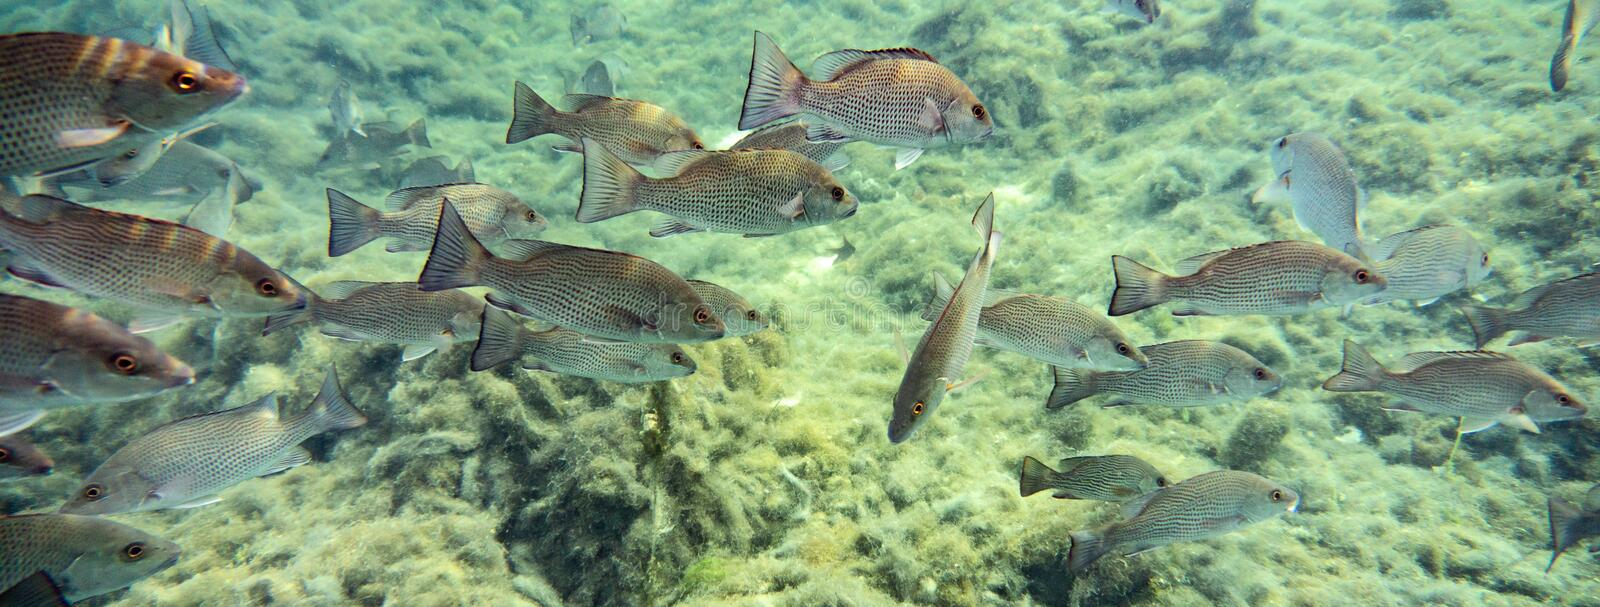 Schooling Mangrove Snappers near a Florida spring. stock photography